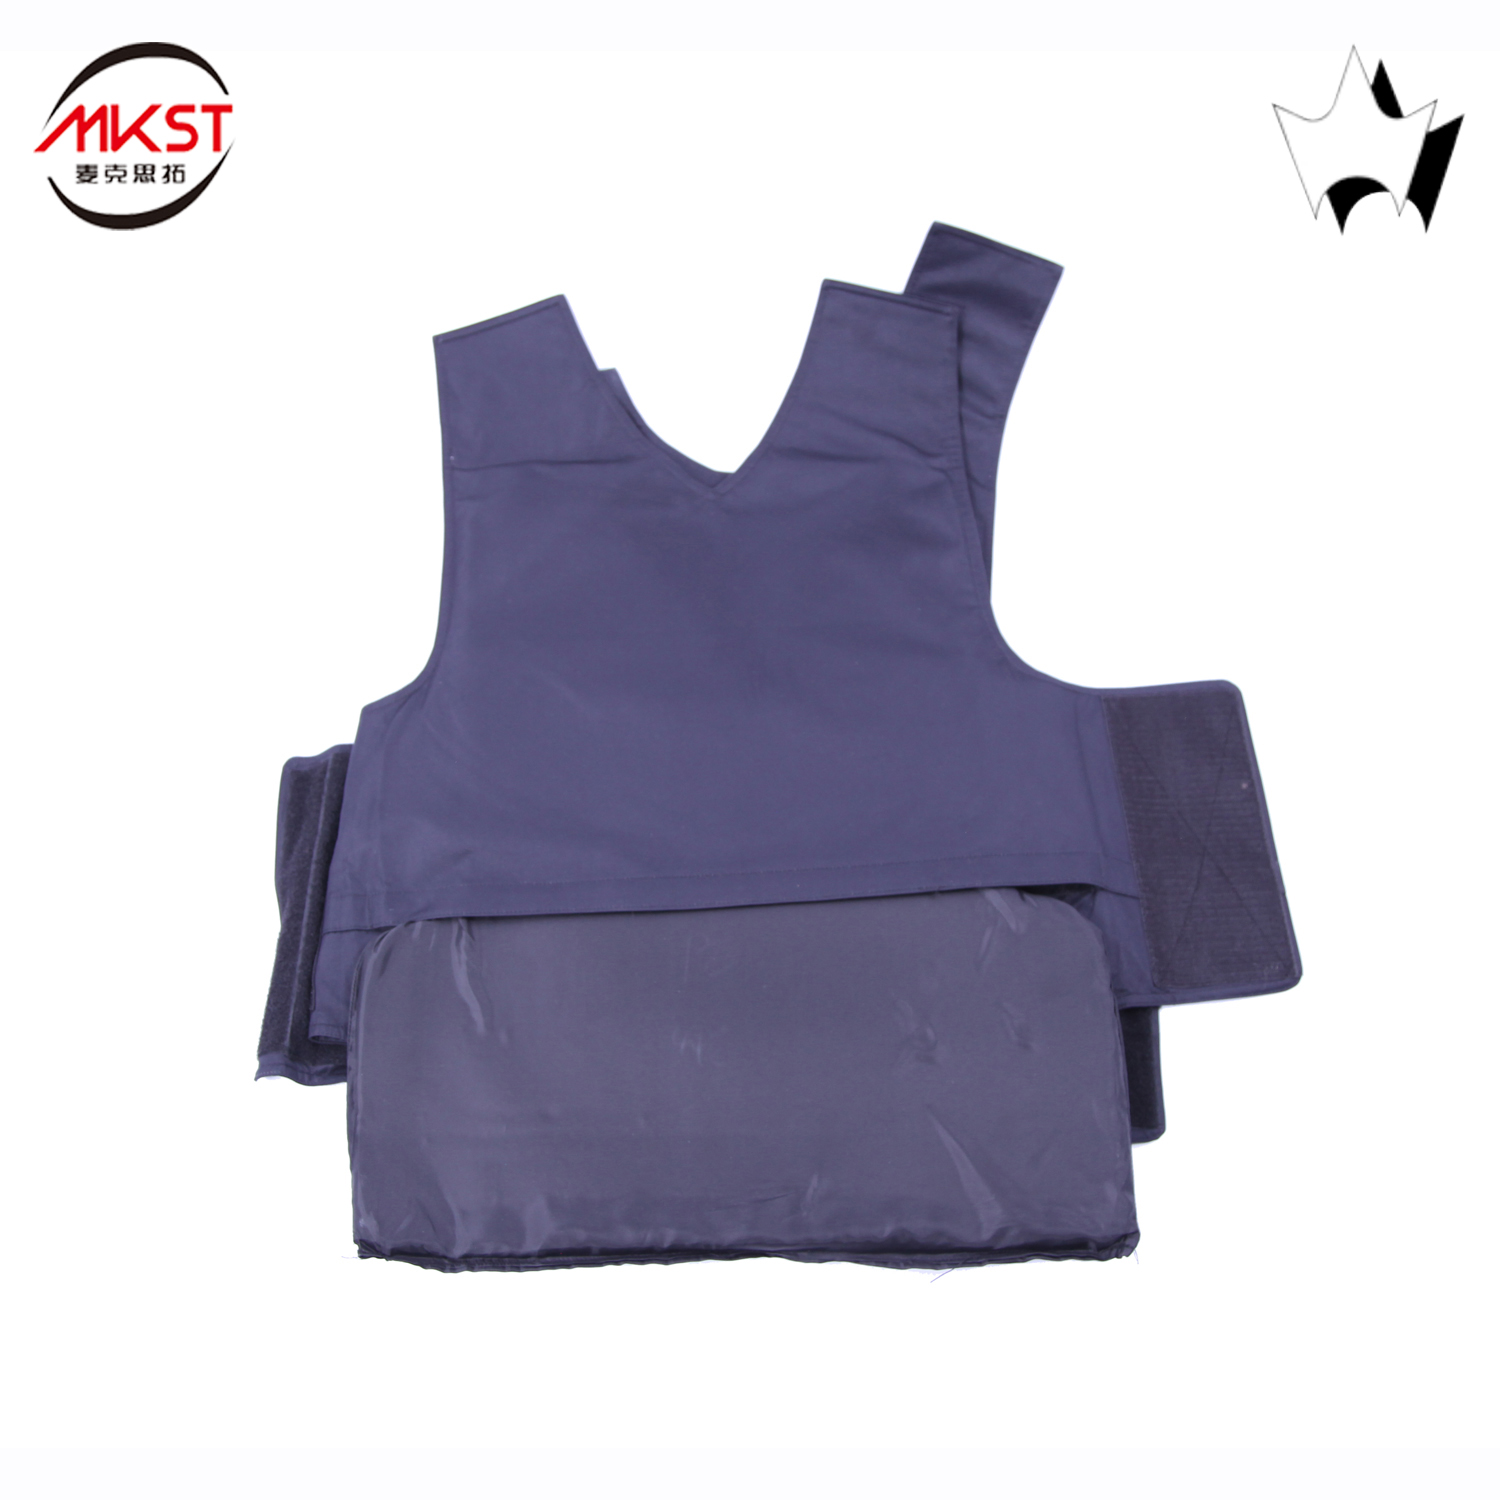 2020 light weight military concelable bulletproof vest